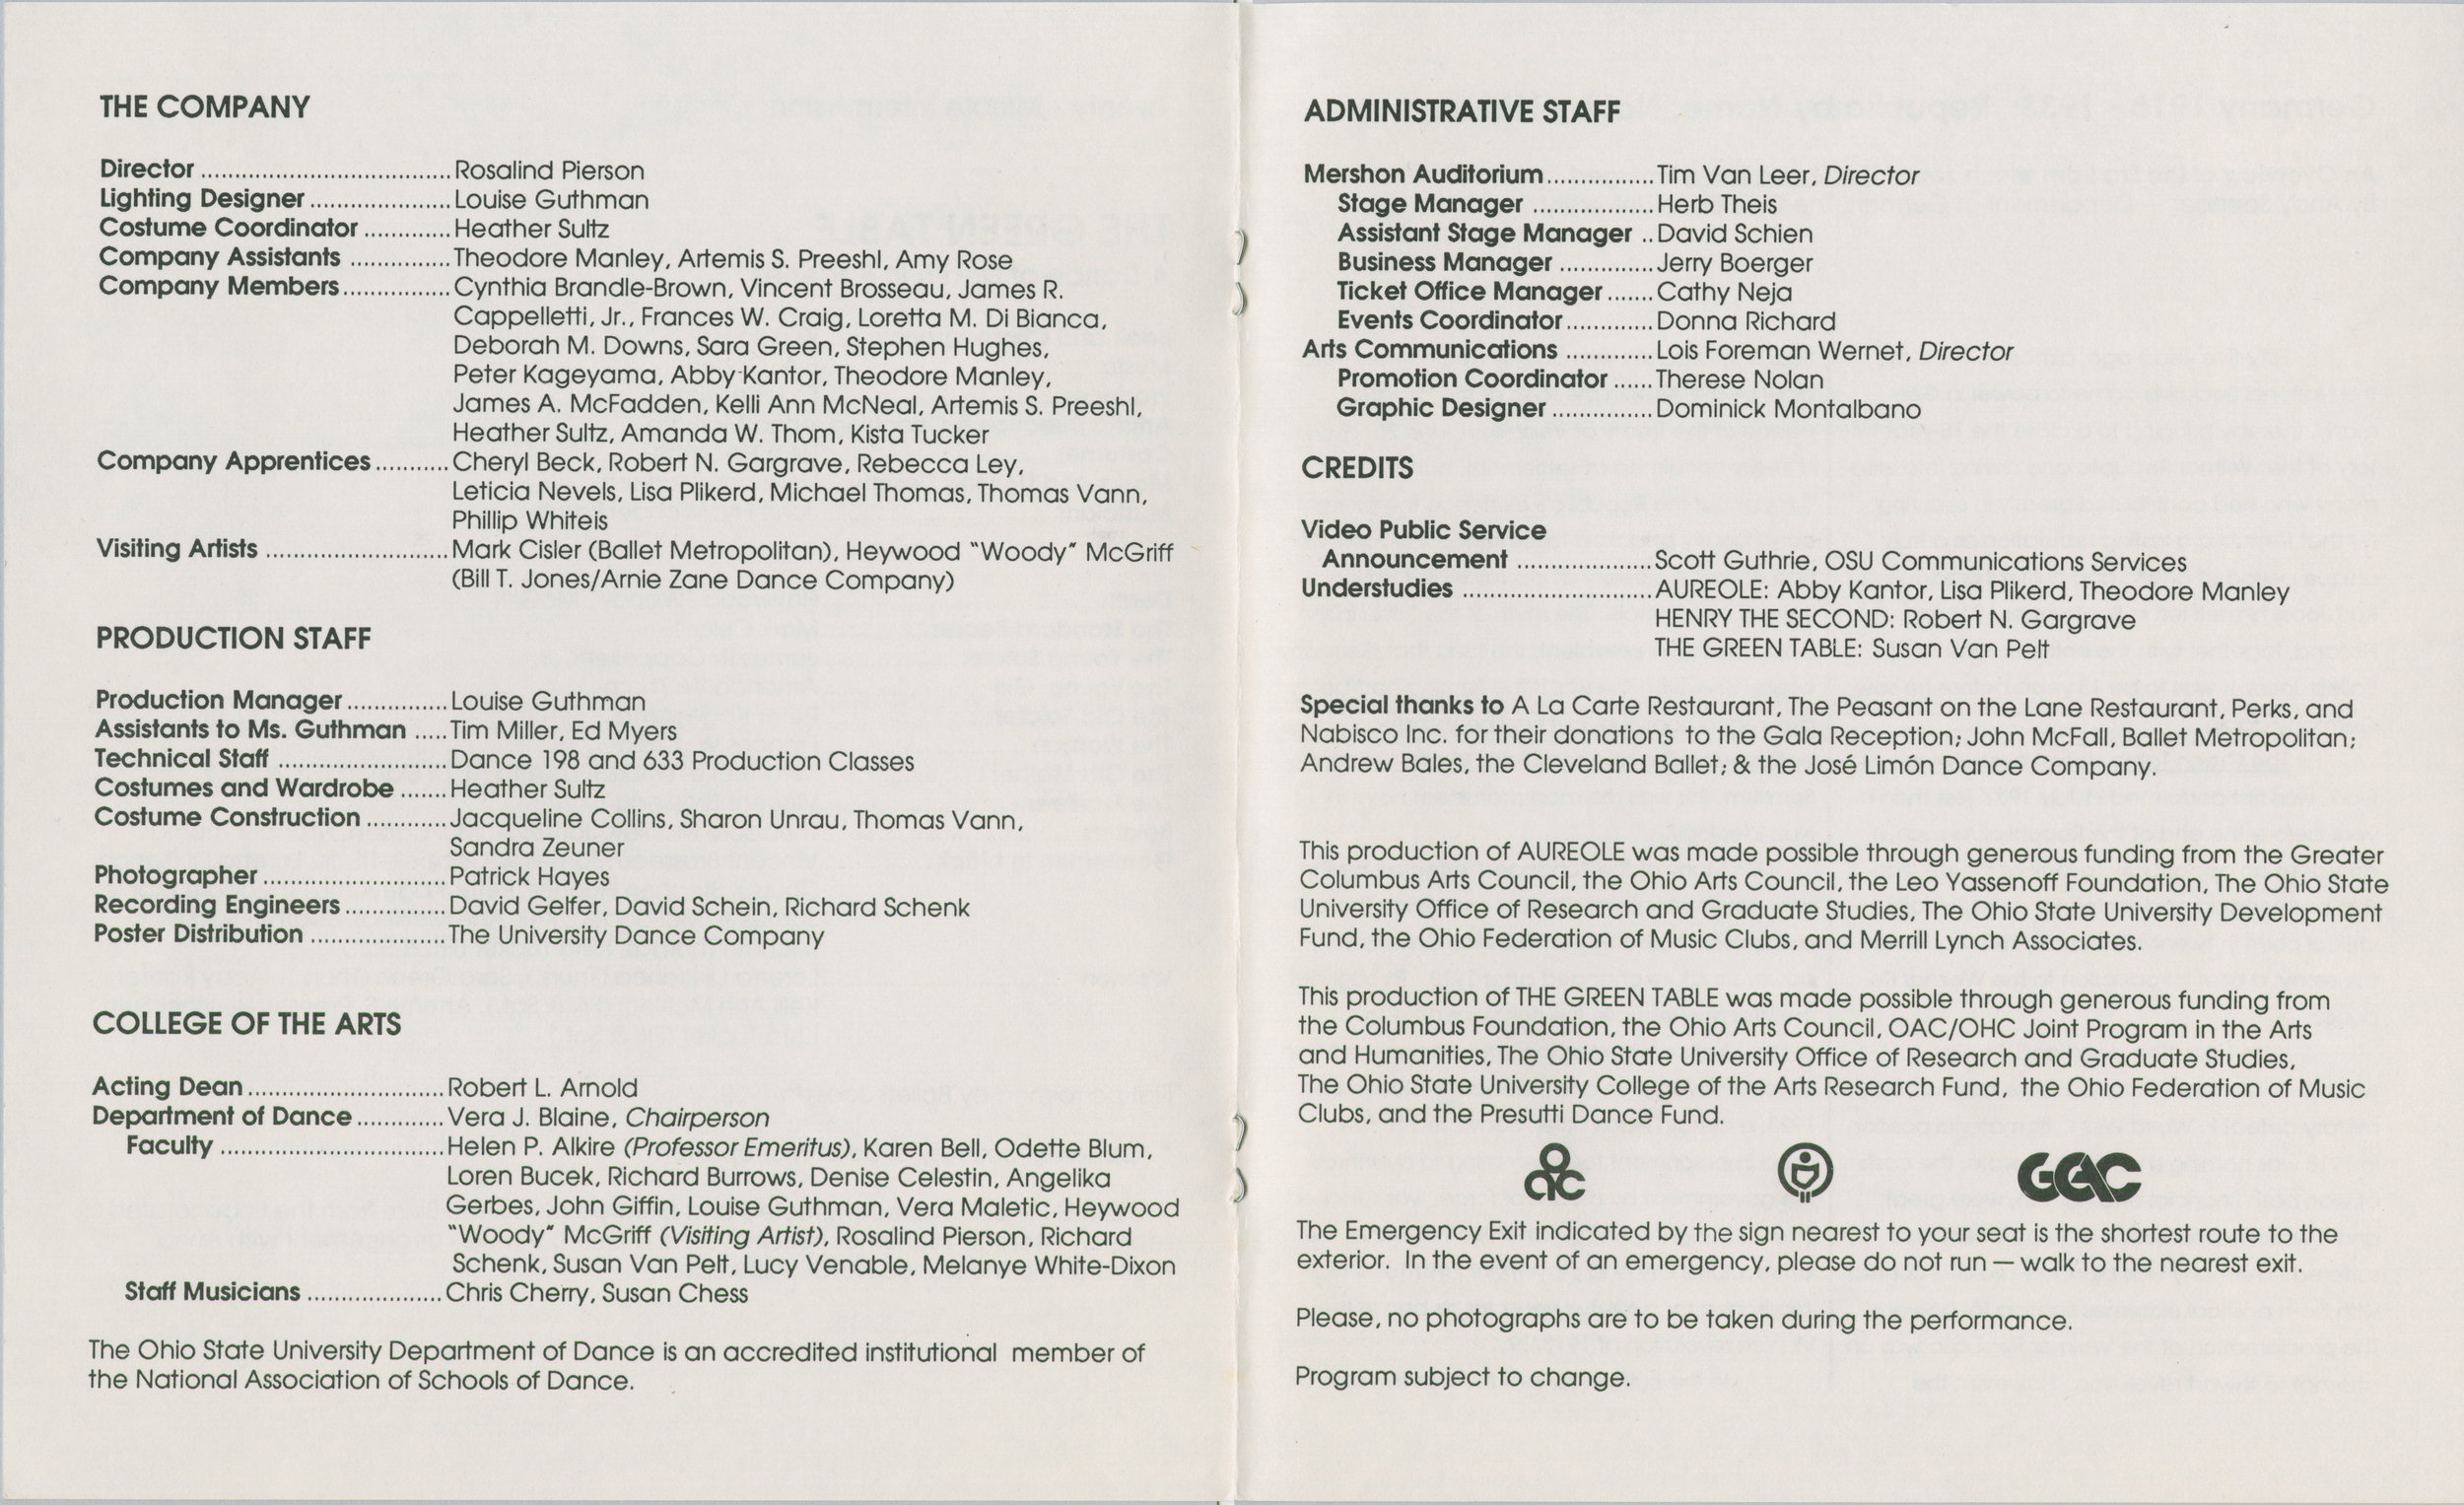 UDC_1988_DancePrograms-004-03.jpg